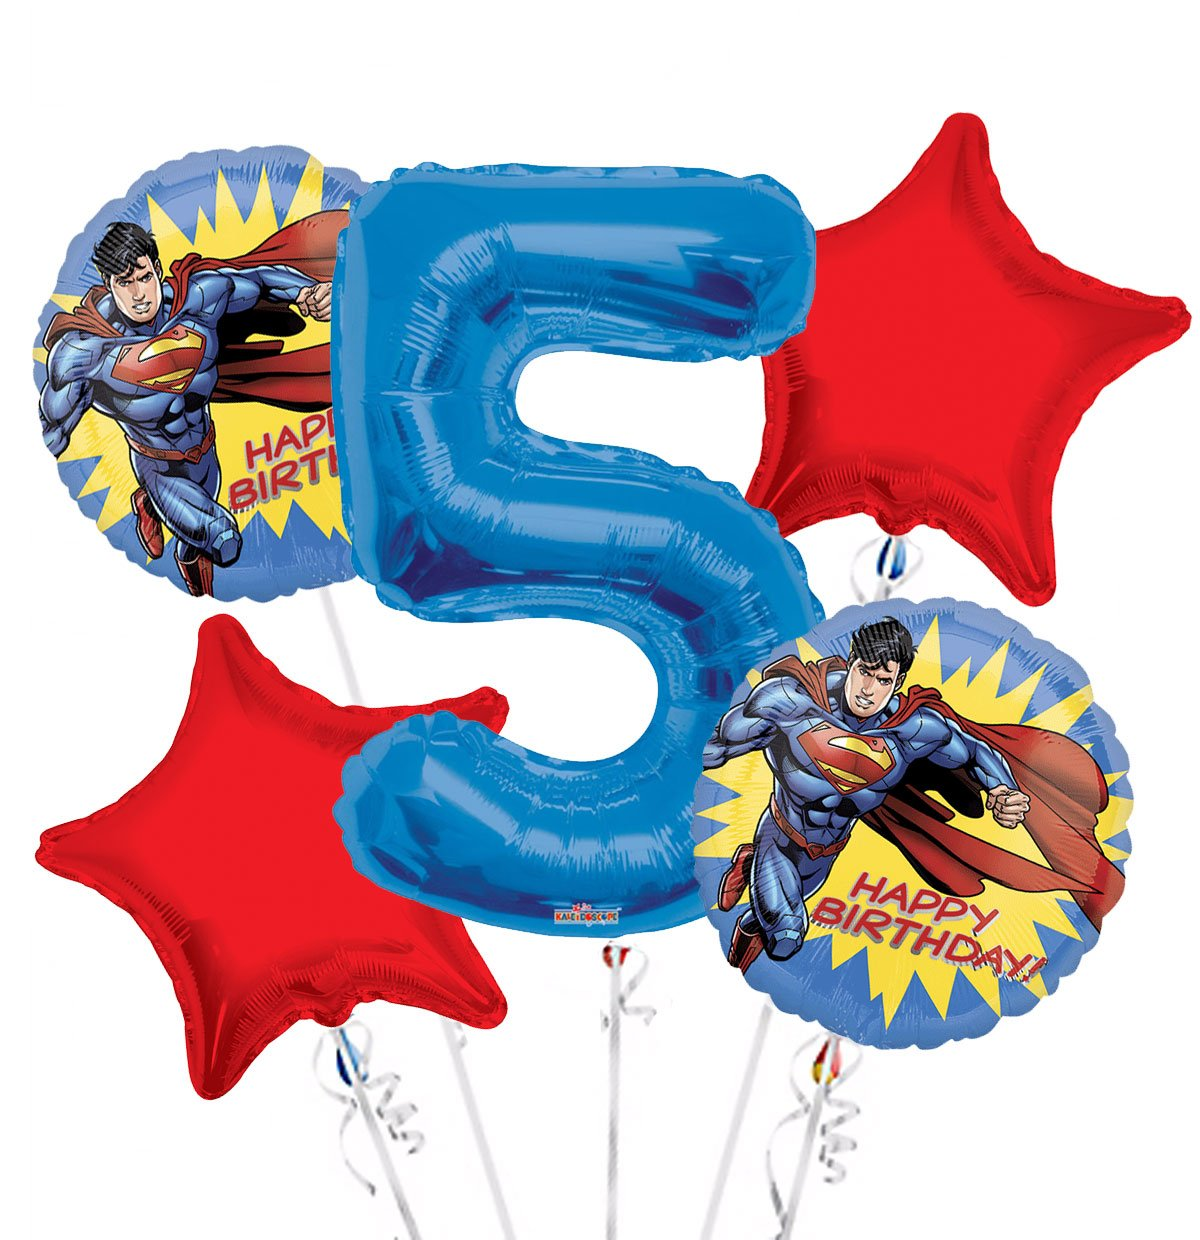 Superman Balloon Bouquet 5th Birthday 5 pcs - Party Supplies, 1 Giant Number 5 Balloon, 34in By Viva Party